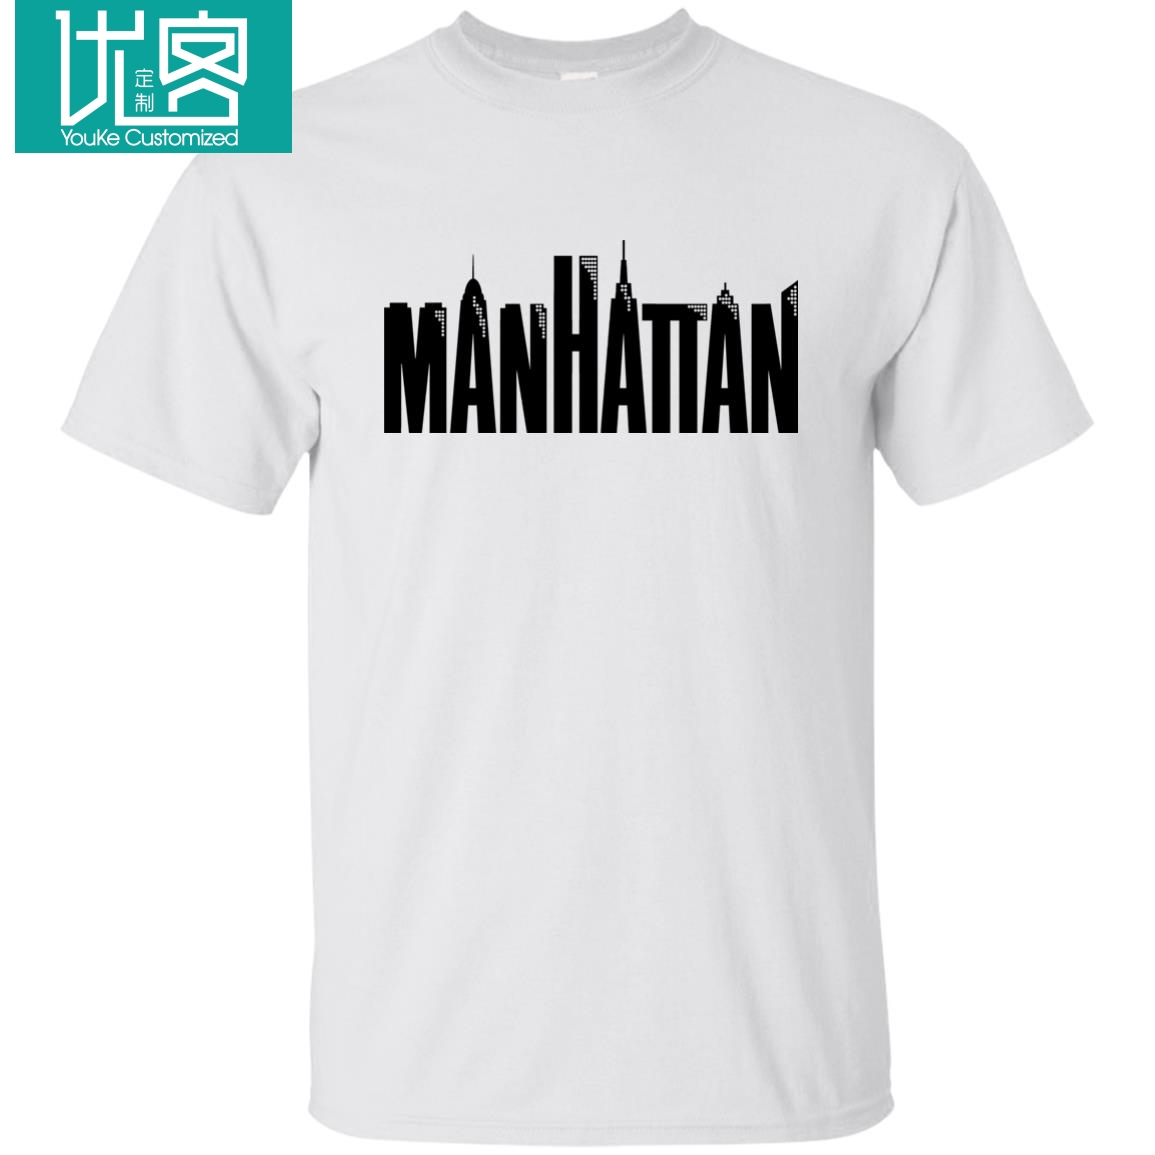 Manhattan, Woody Allen, Movie, Retro, 1970's, Icon G200Ultra Cotton T-Sh Cool Casual pride t shirt men Unisex New image